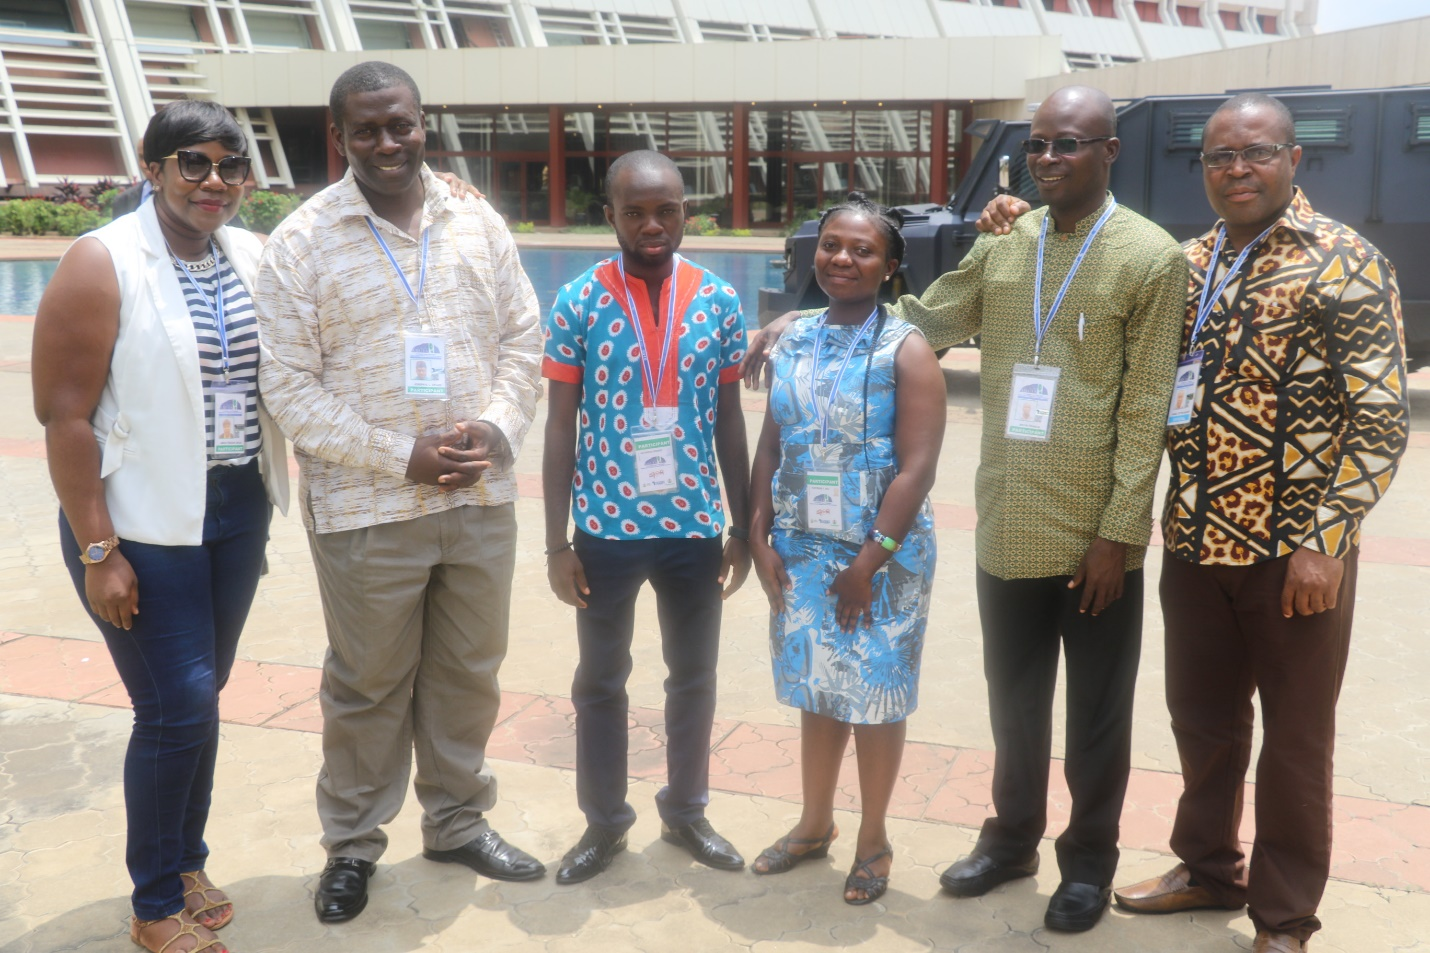 Oral presenters at the 6th AFENET Scientific Conference in Abuja - Nigeria